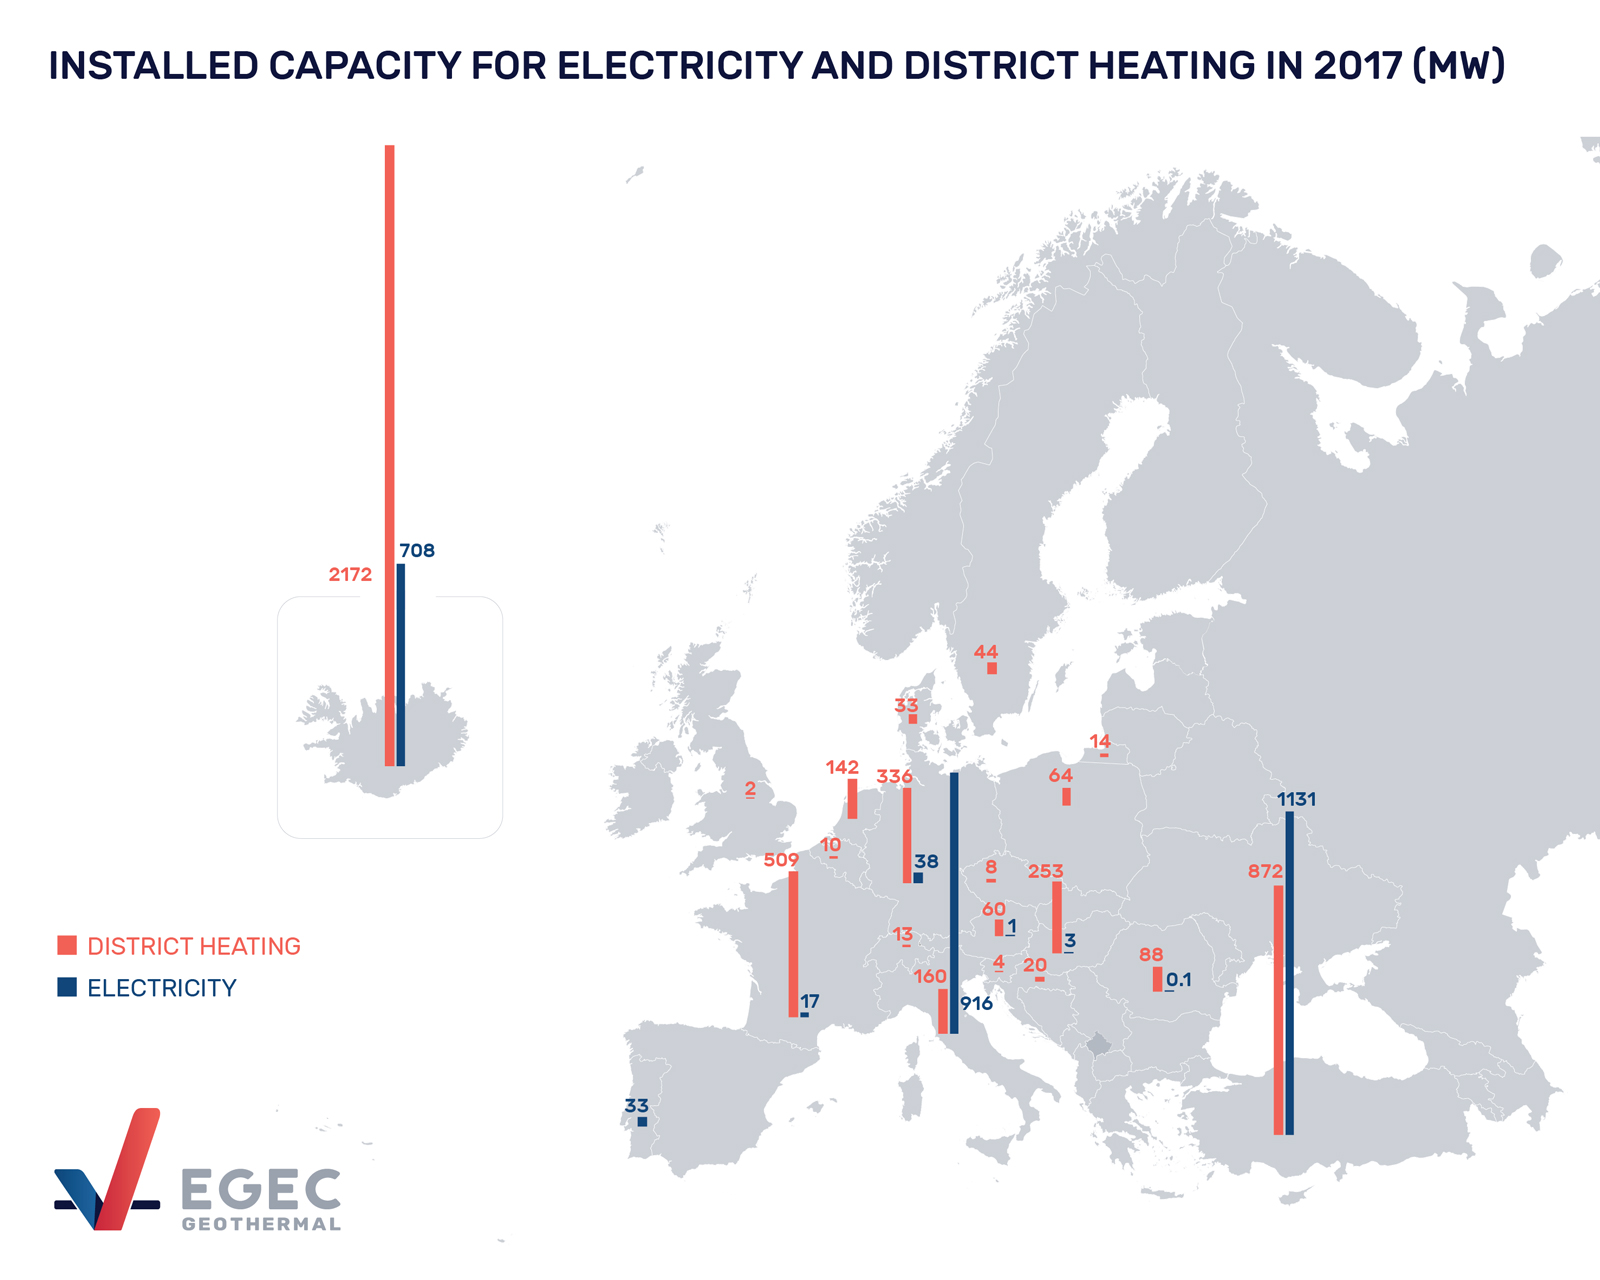 EGEC publishes its annual Geothermal Market Report